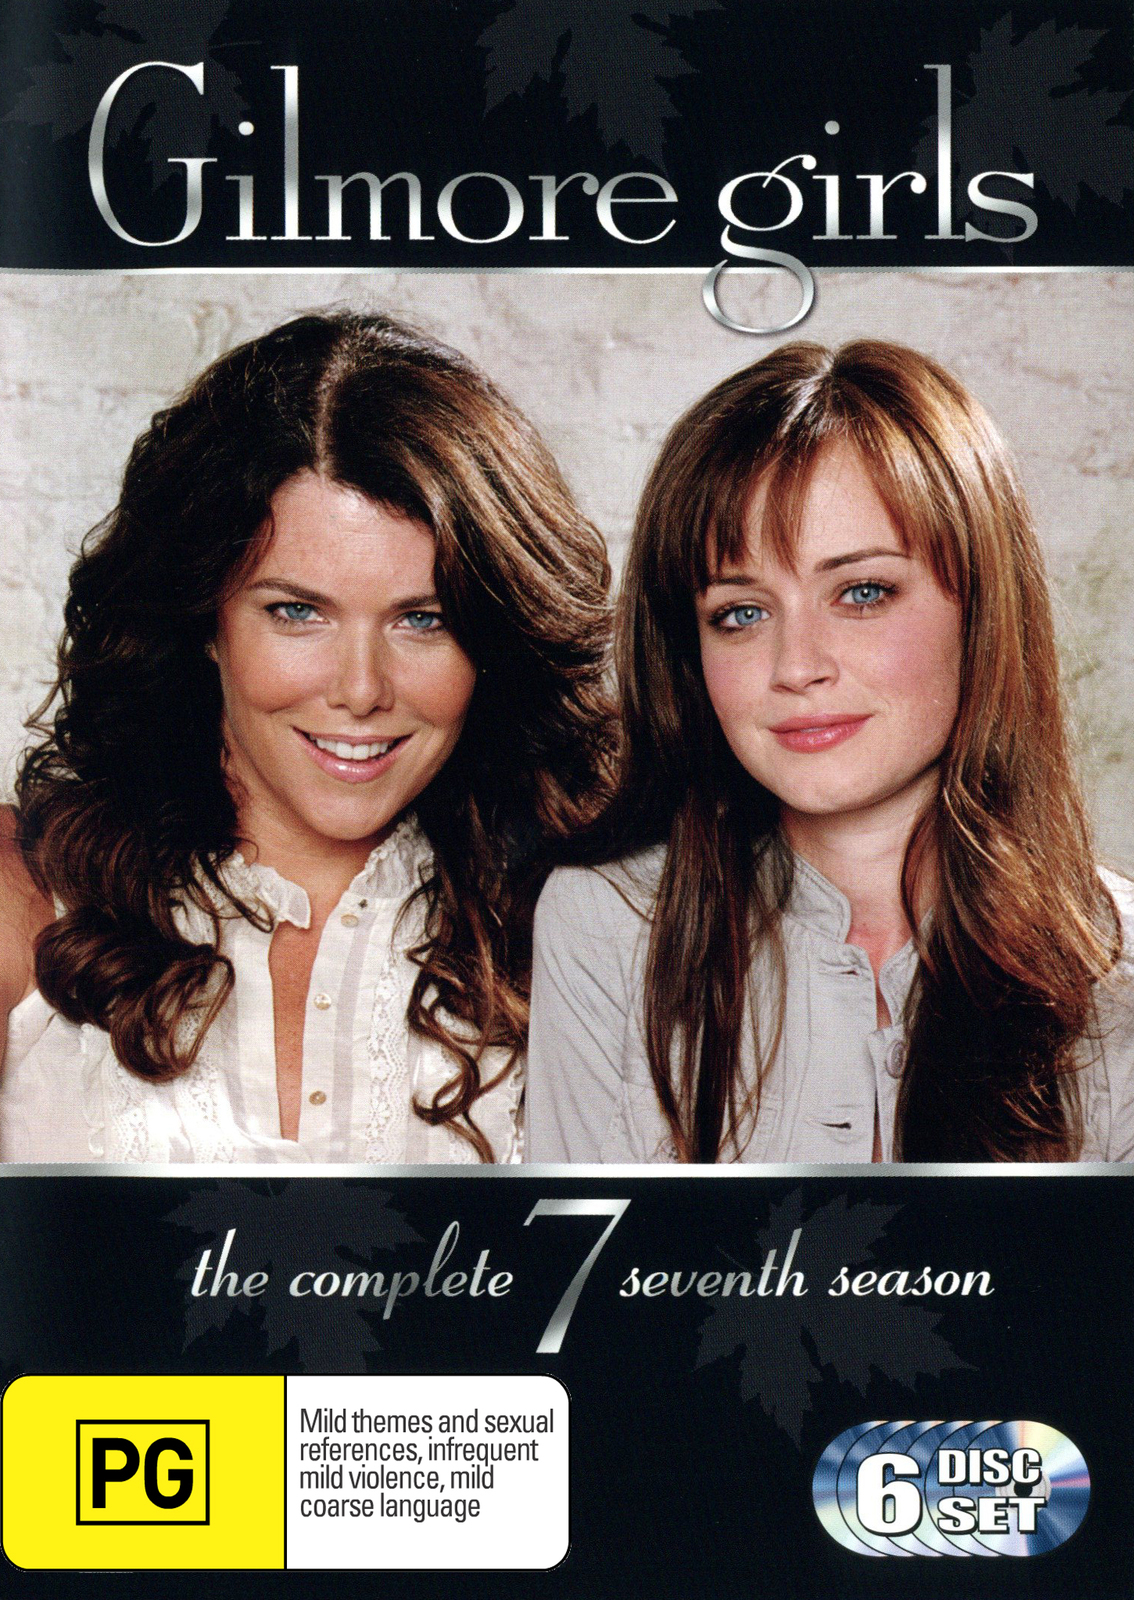 Gilmore Girls - The Complete Seventh Season (6 Disc Set) (New Packaging) on DVD image